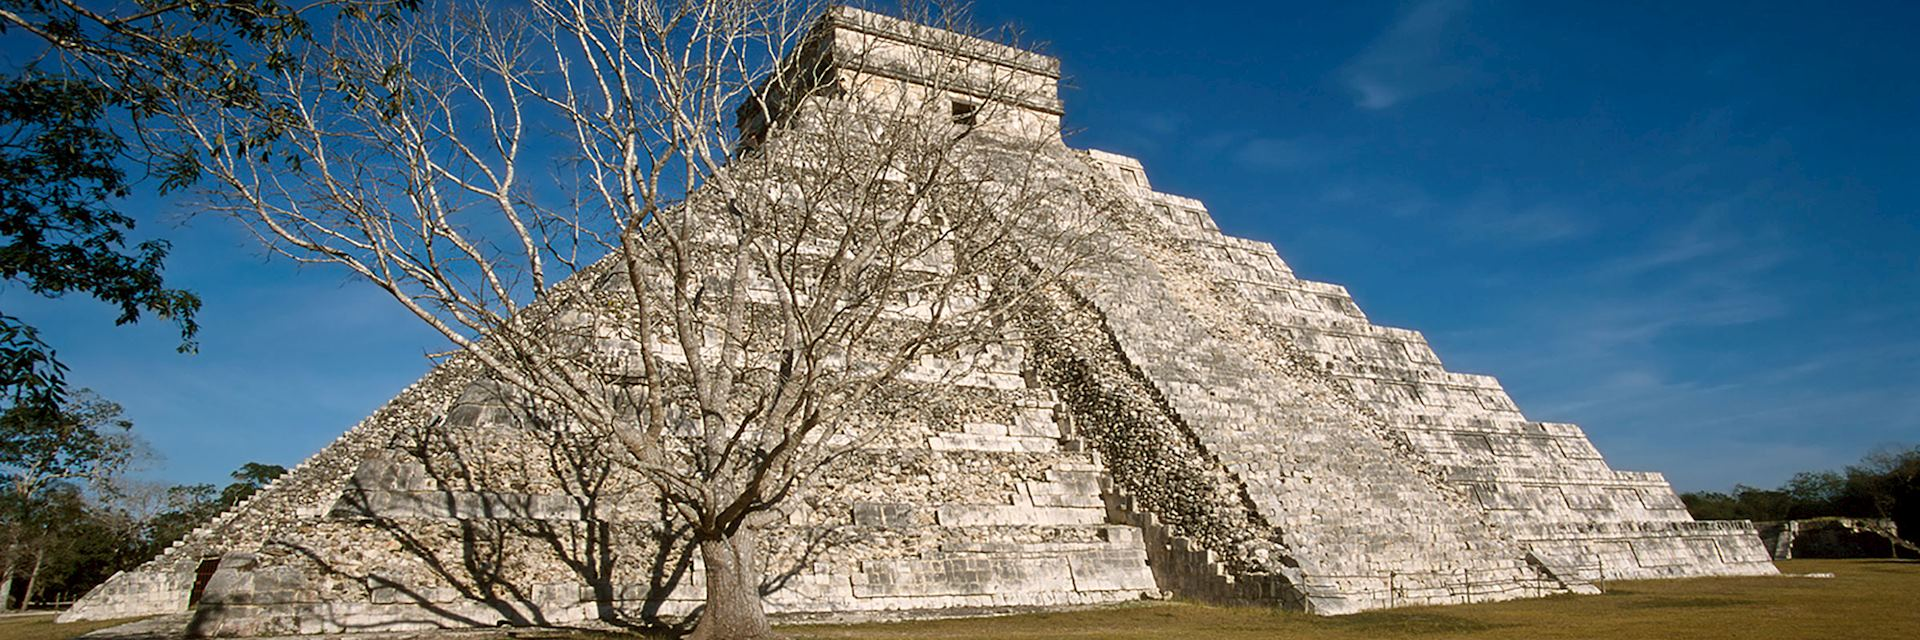 The Mayan ruins of Chichén Itzá, Mexico